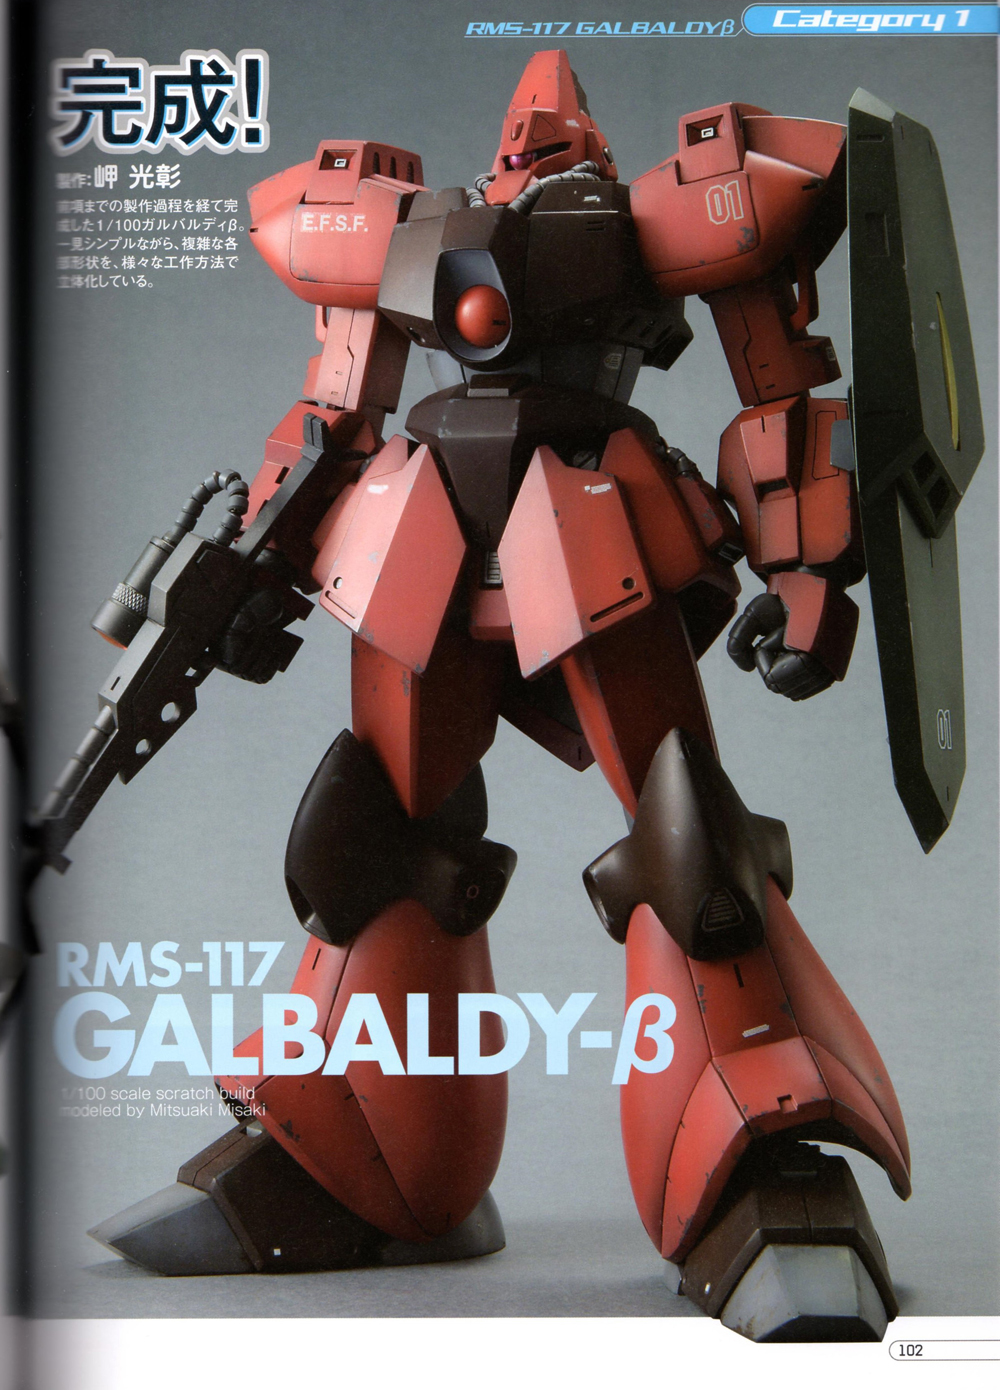 gundam scratch build manual 2 scan